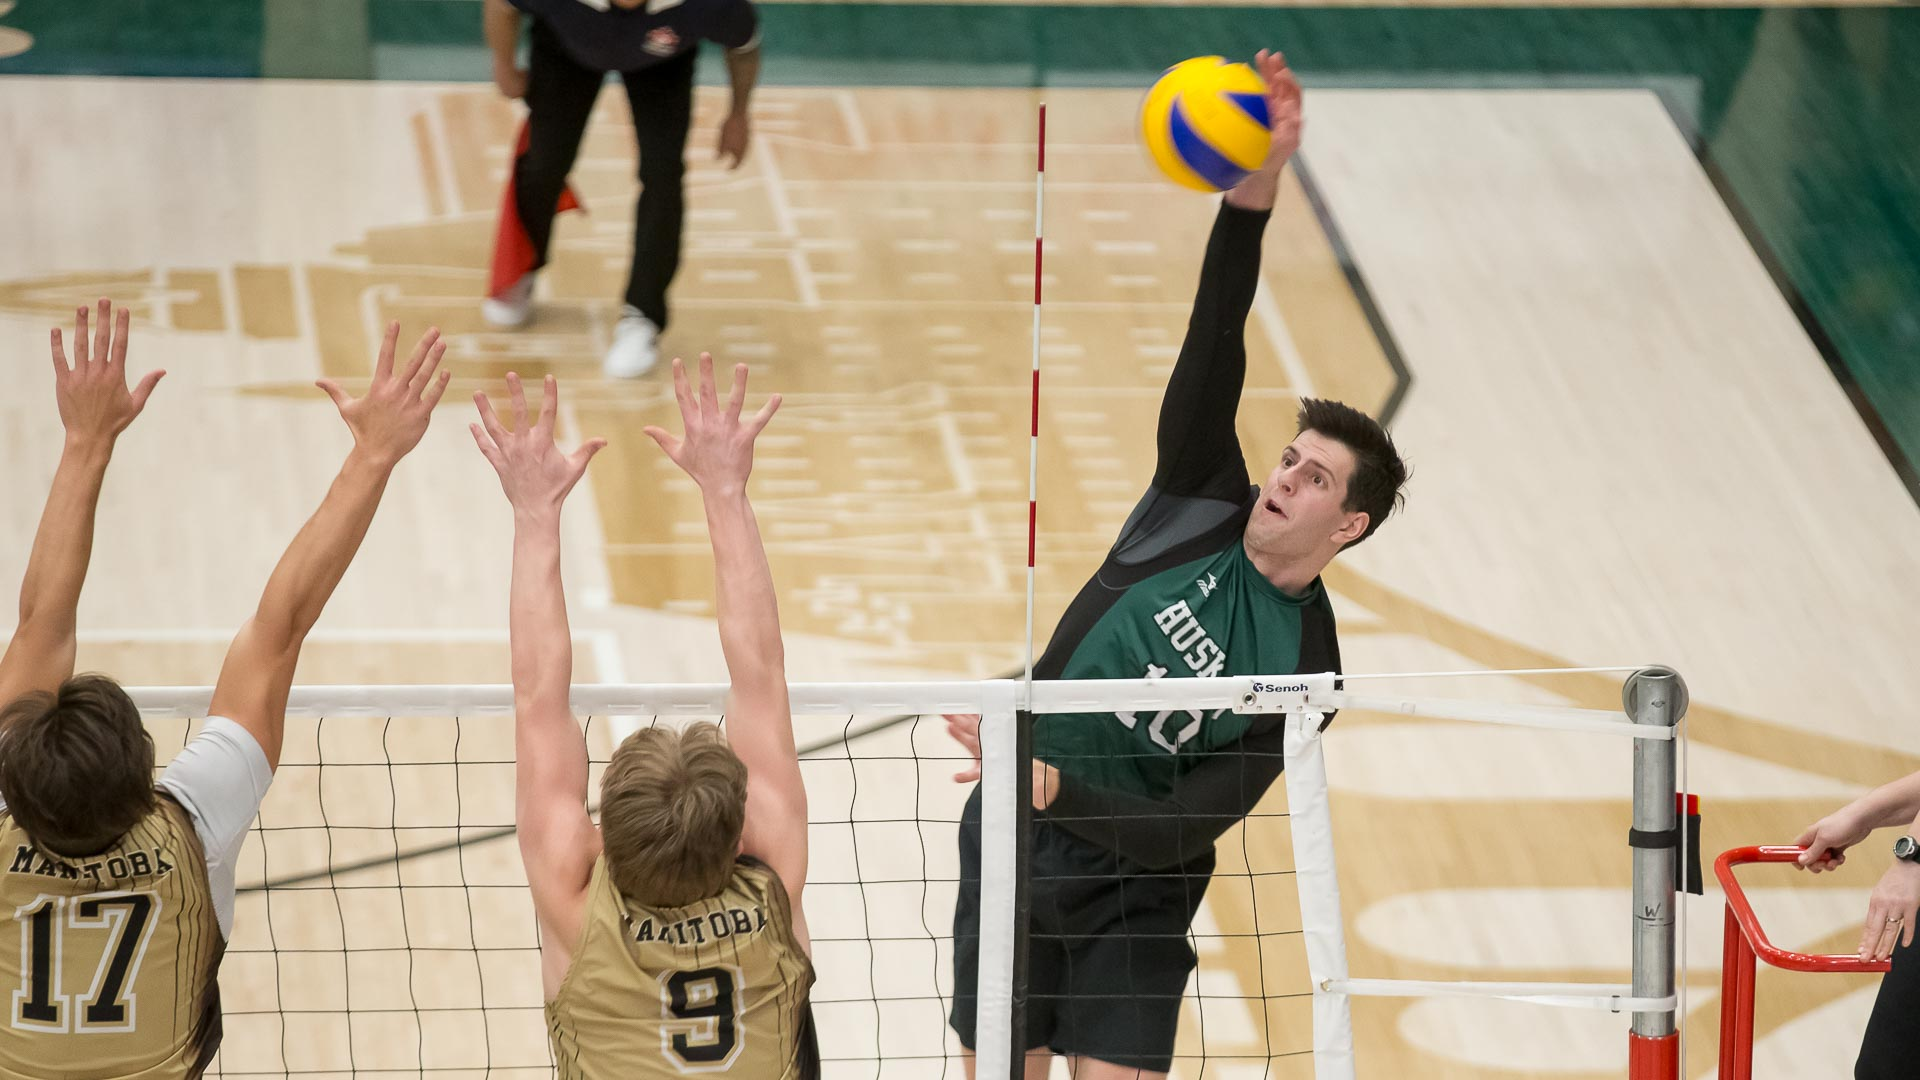 Colin Fraser - Men's Volleyball - University of Saskatchewan